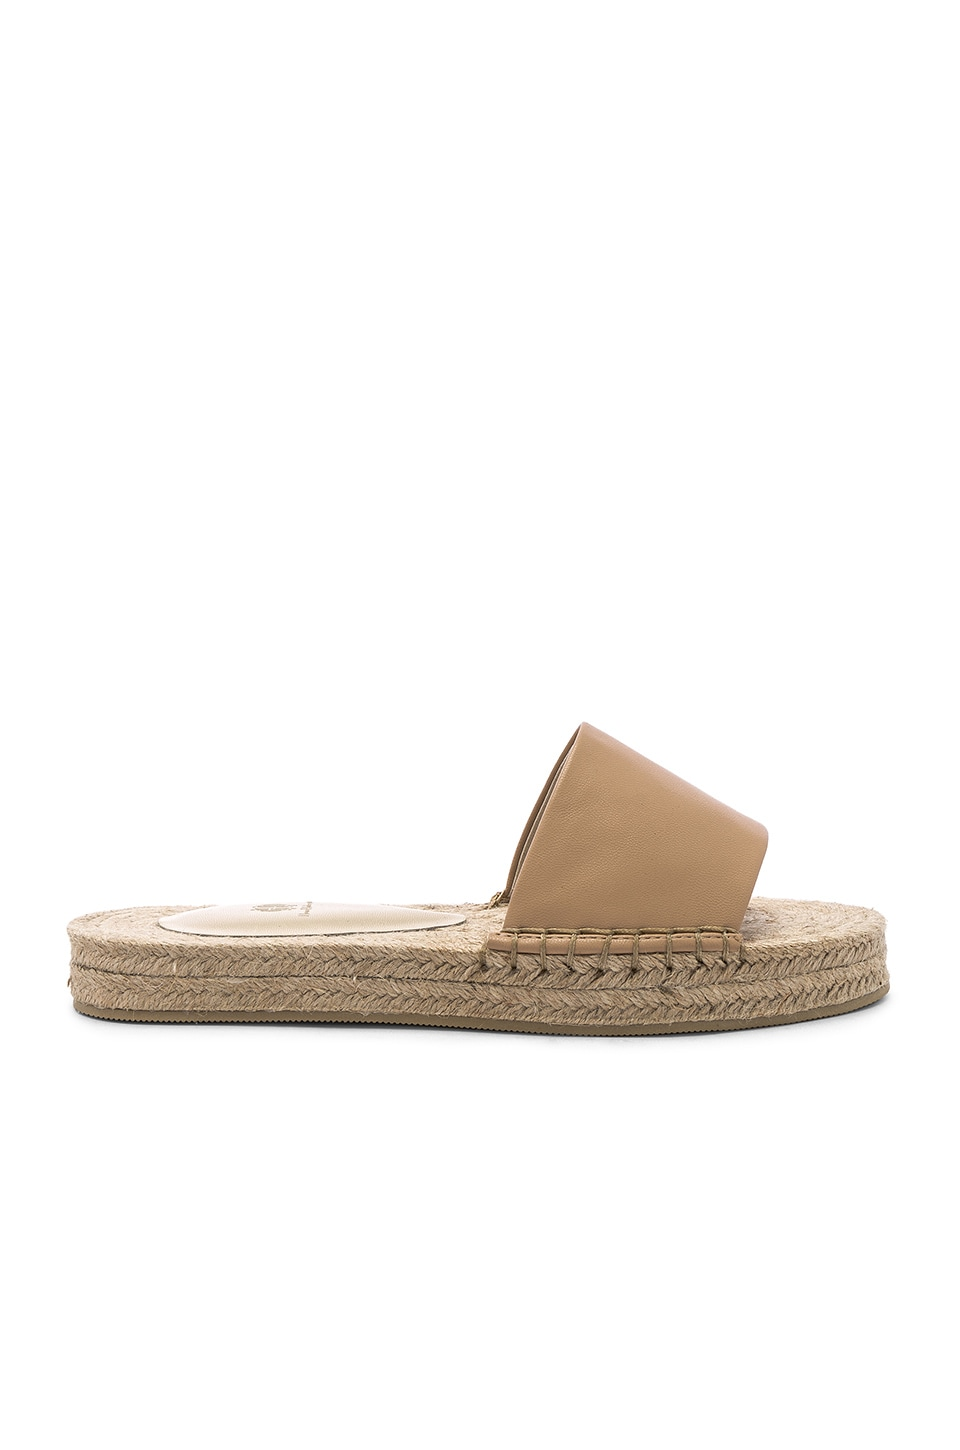 House of Harlow 1960 X REVOLVE Palmer Espadrille Slide in Nude